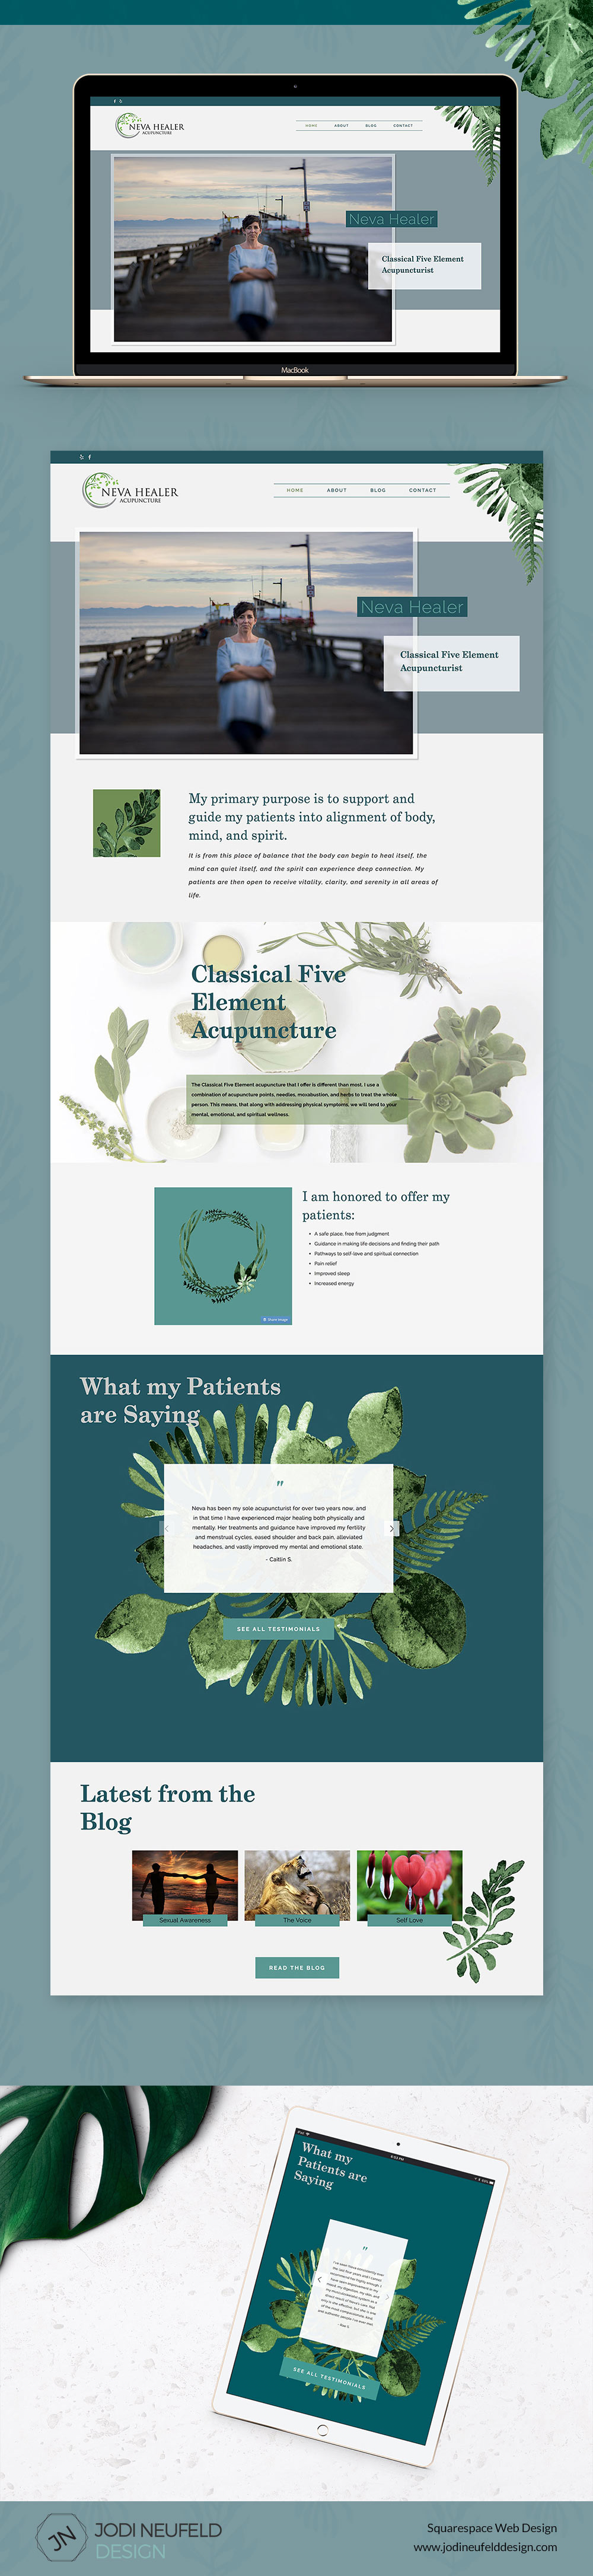 Neva Healer Squarespace website design by Jodi Neufeld Design